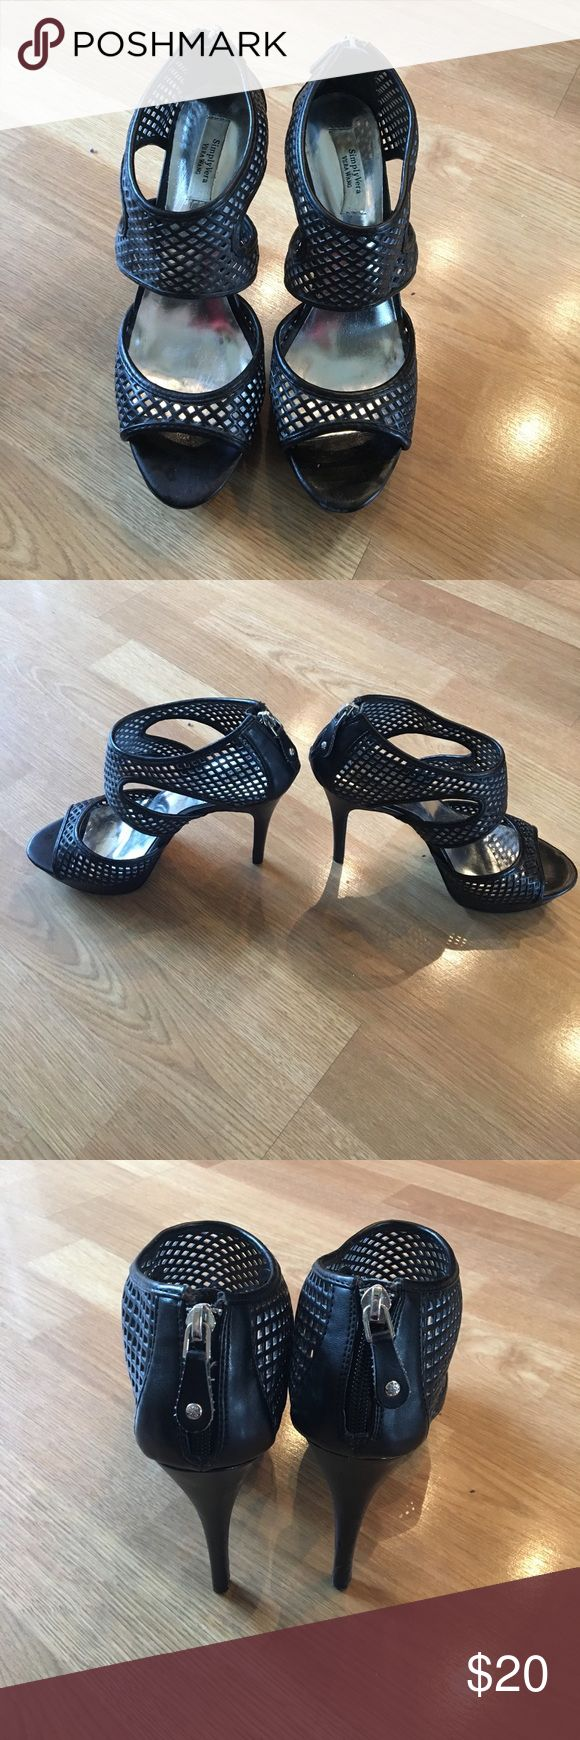 Simply Vera Vera Wang Heels Simply Vera Vera Wang Heels. These are very comfortable and have only been worn once. The heel is 5 inches and the platform at the bottom is 1 inch. Simply Vera Vera Wang Shoes Heels